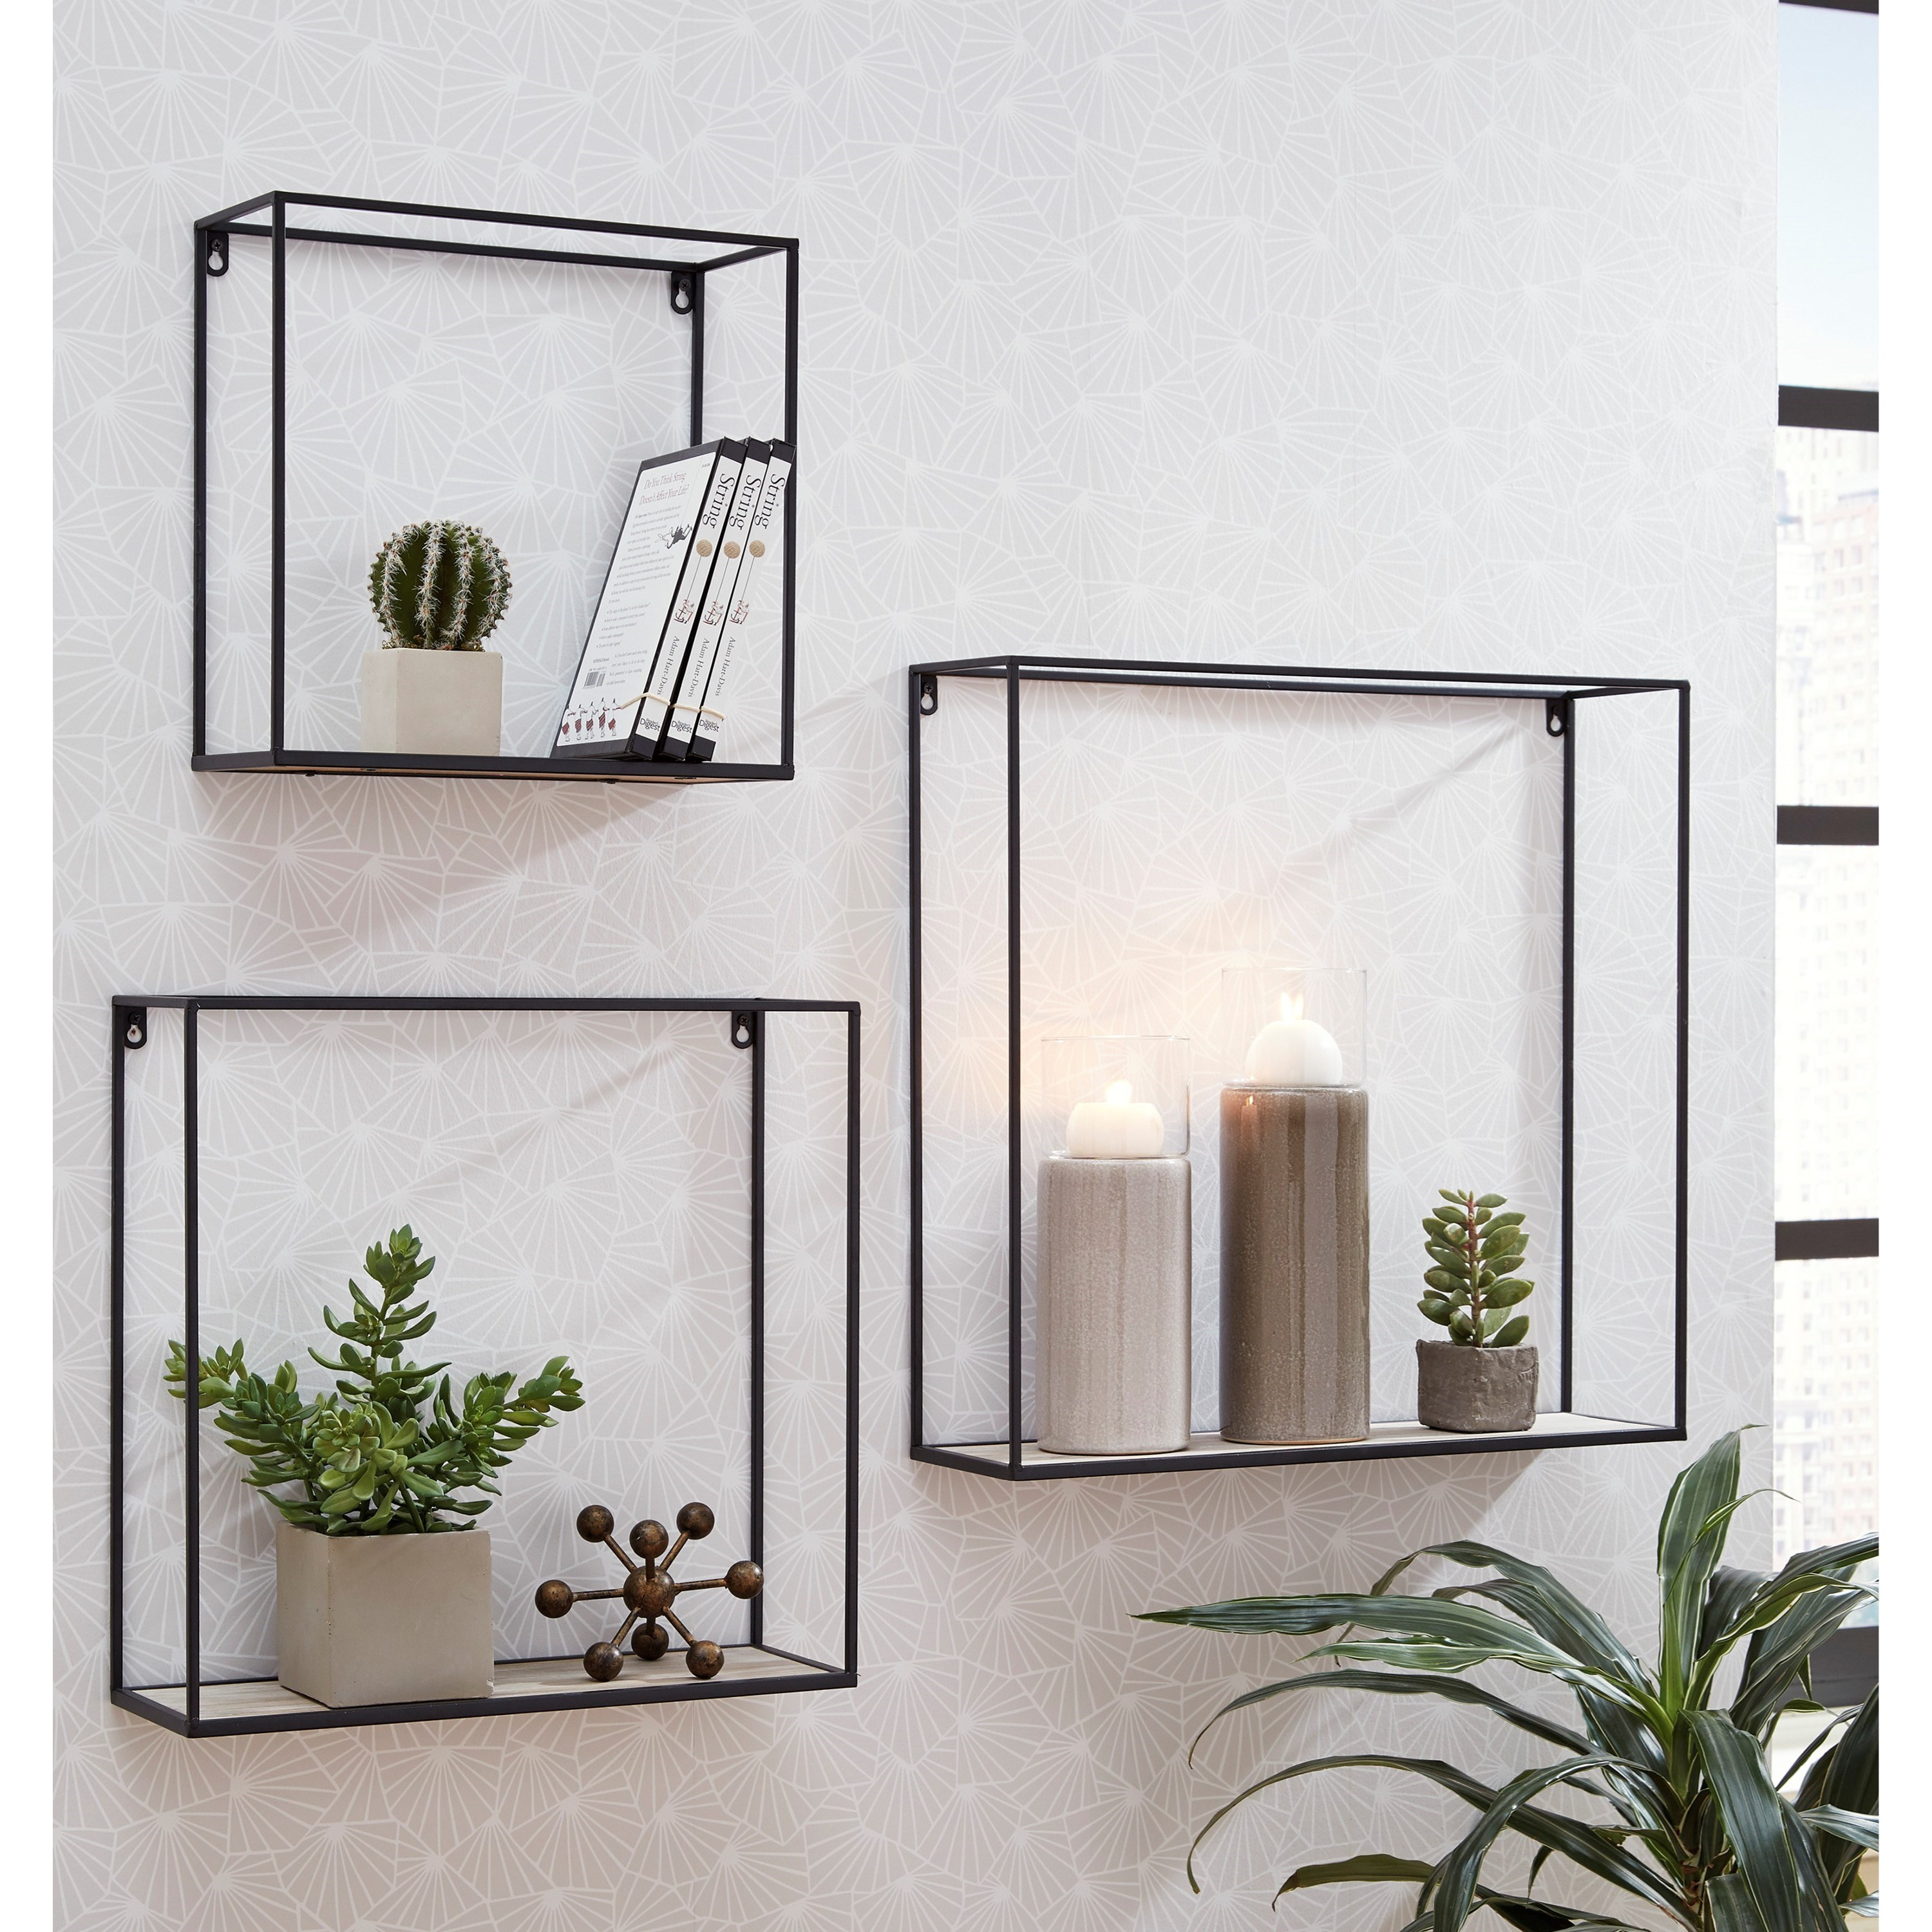 Wall Art Efharis Wall Shelf Set by Signature Design by Ashley at Home Furnishings Direct